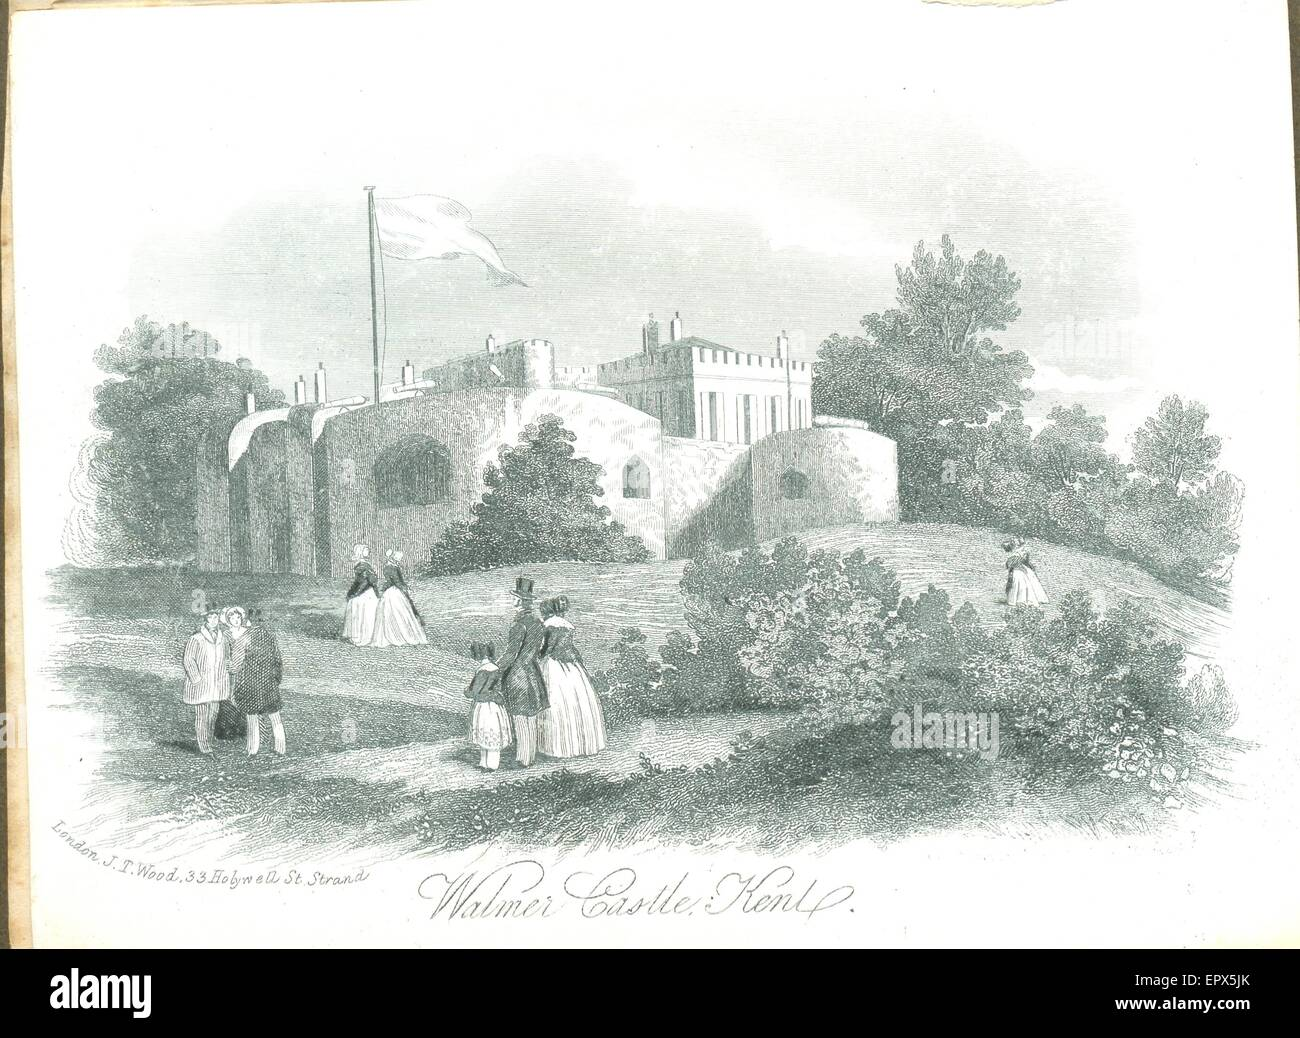 Engraved memento of Walmer Castle - Stock Image